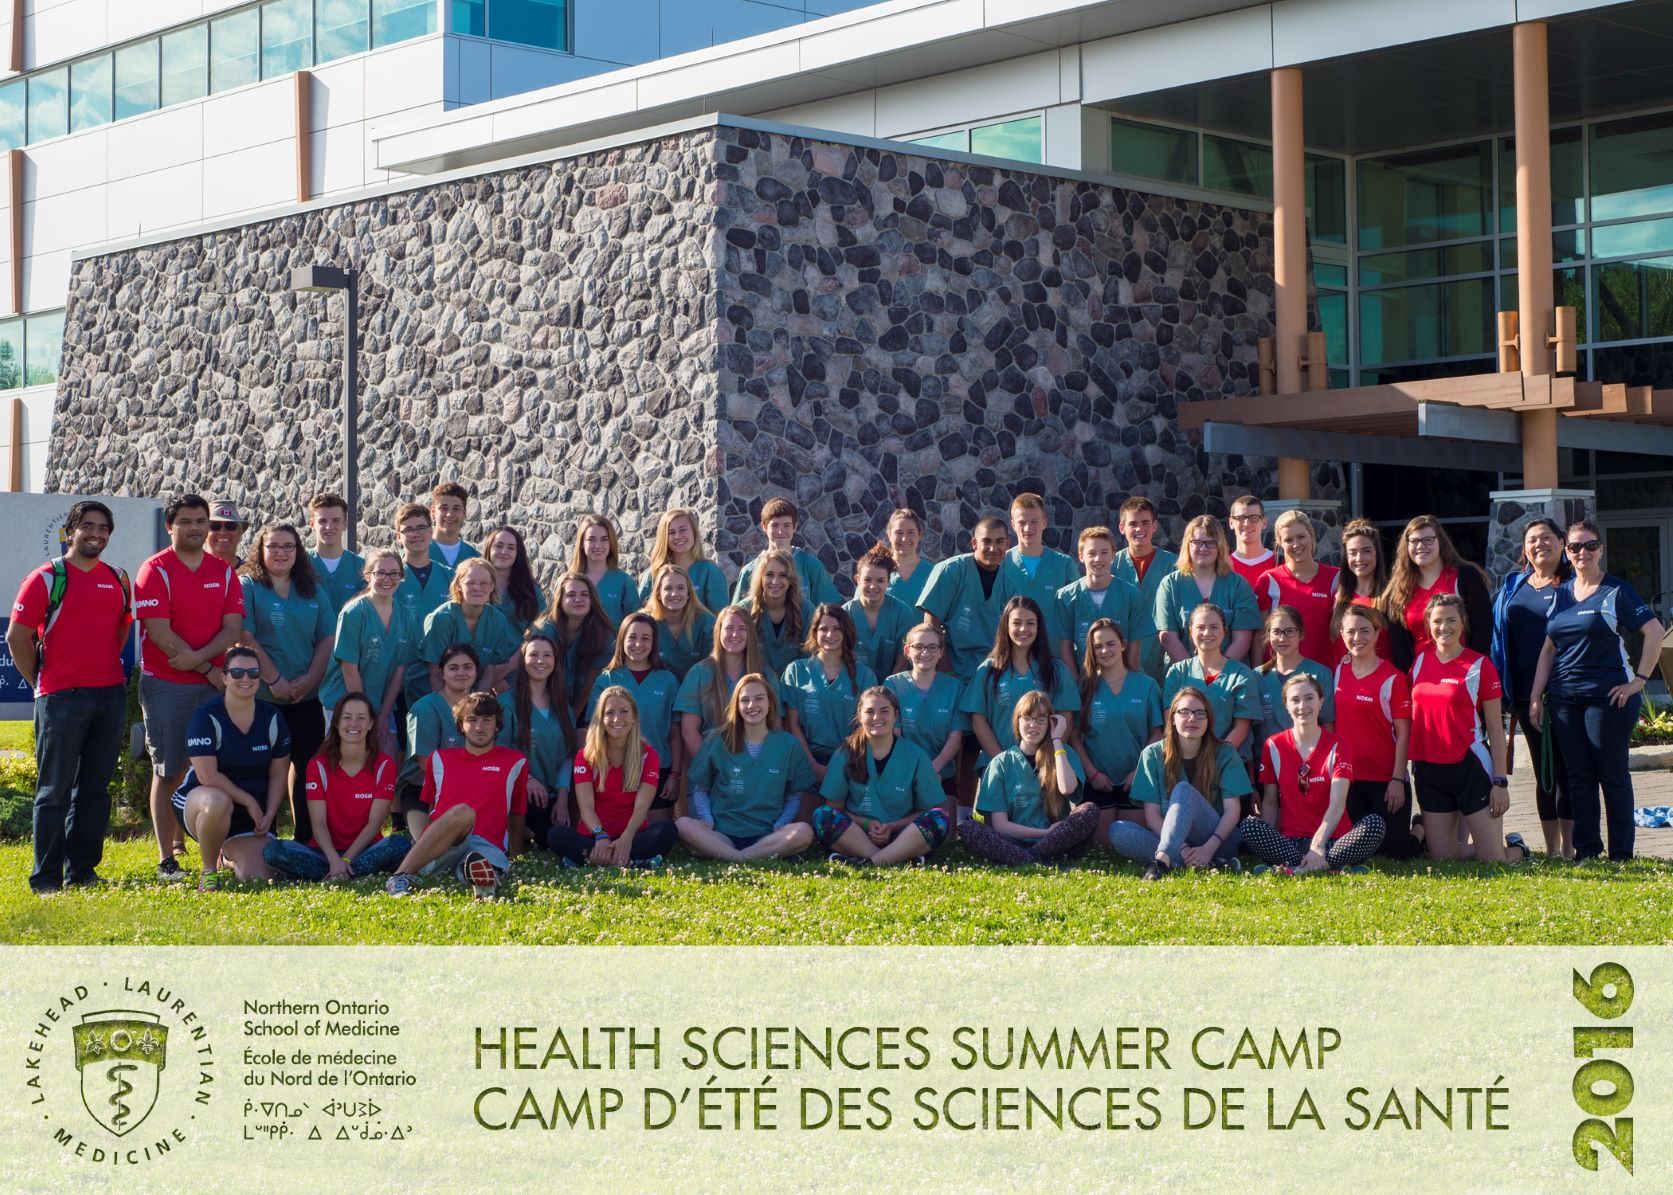 Health Sciences Summer Camp 2016 group photo of campers, team leads, and NOSM staff